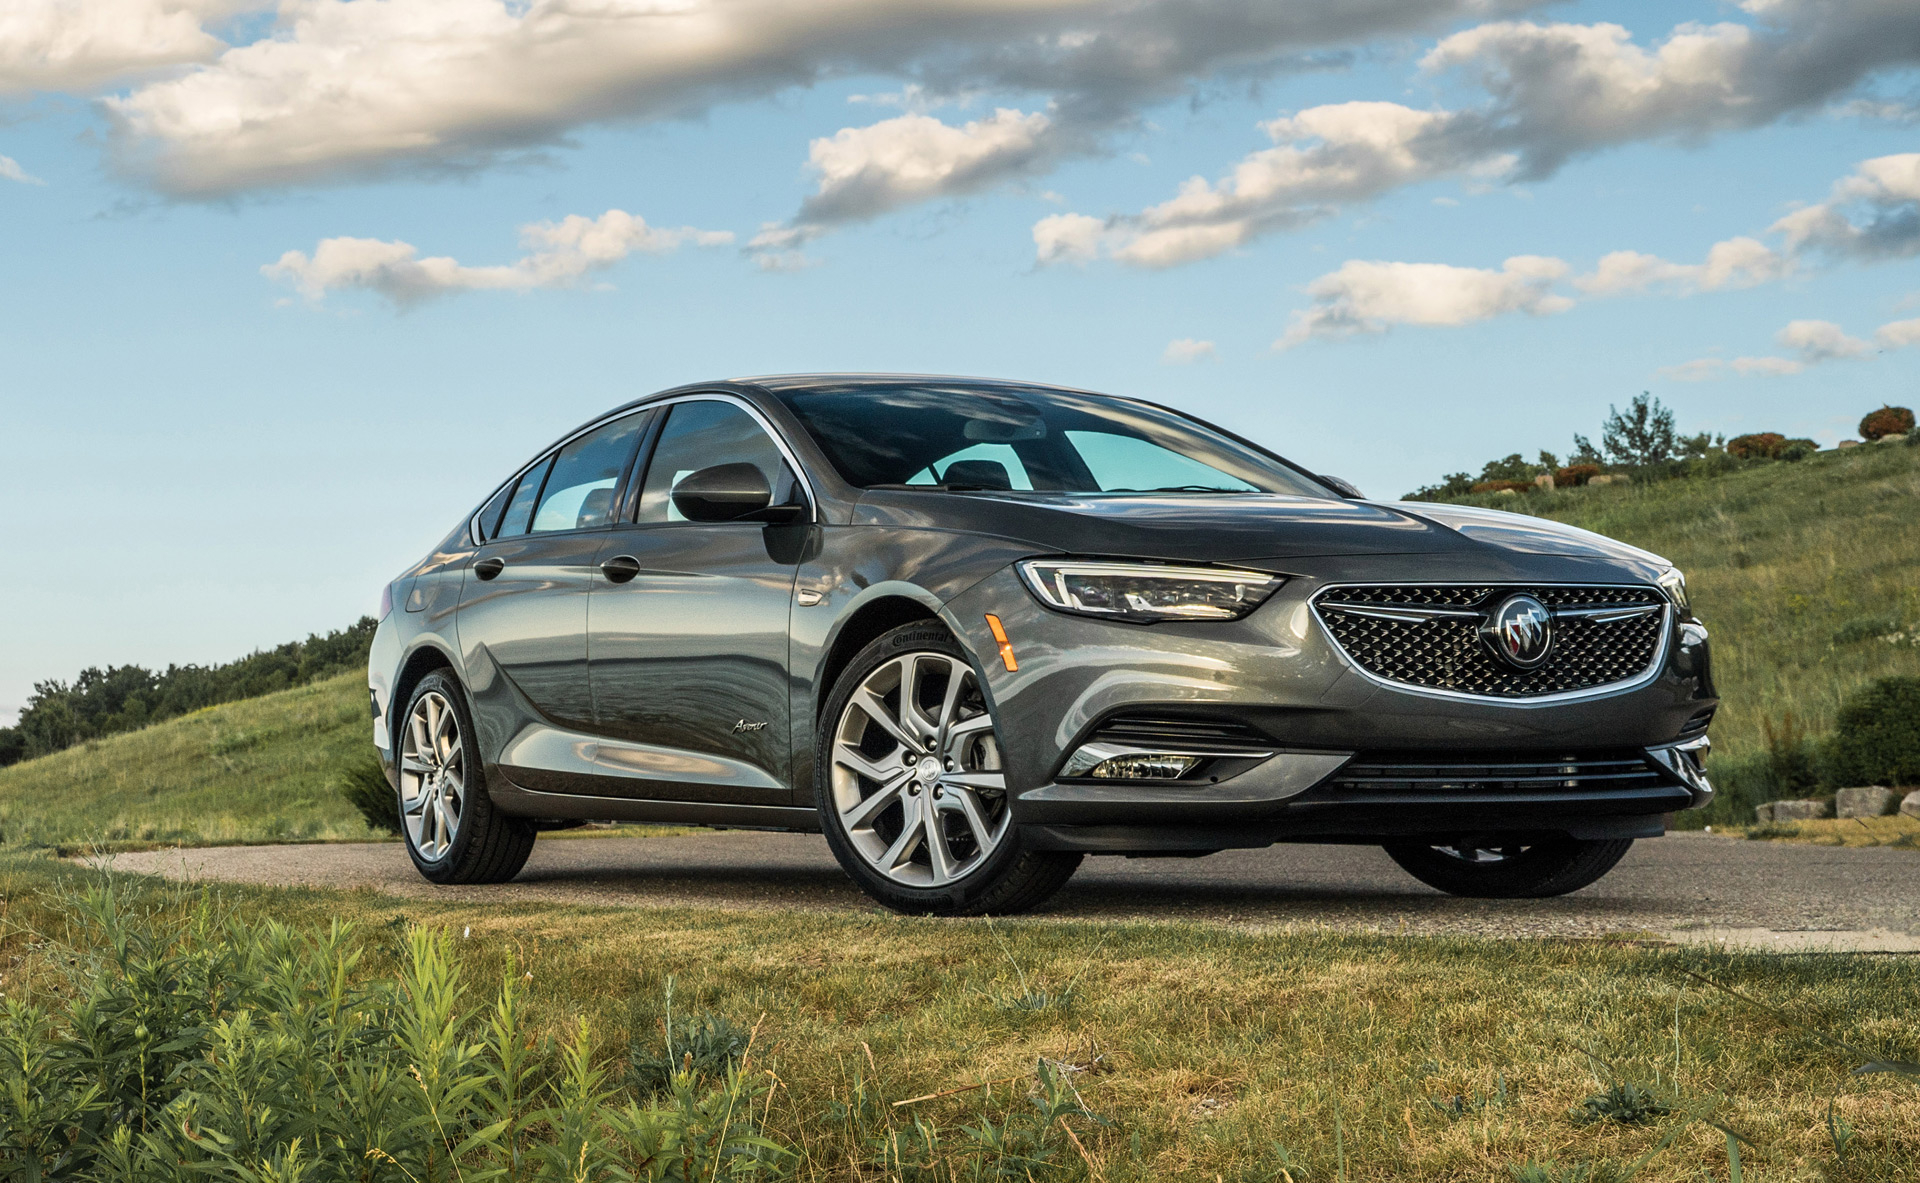 2019 Buick Regal Offered With Upmarket Avenir Trim 2022 Buick Regal Pictures, Performance, Review